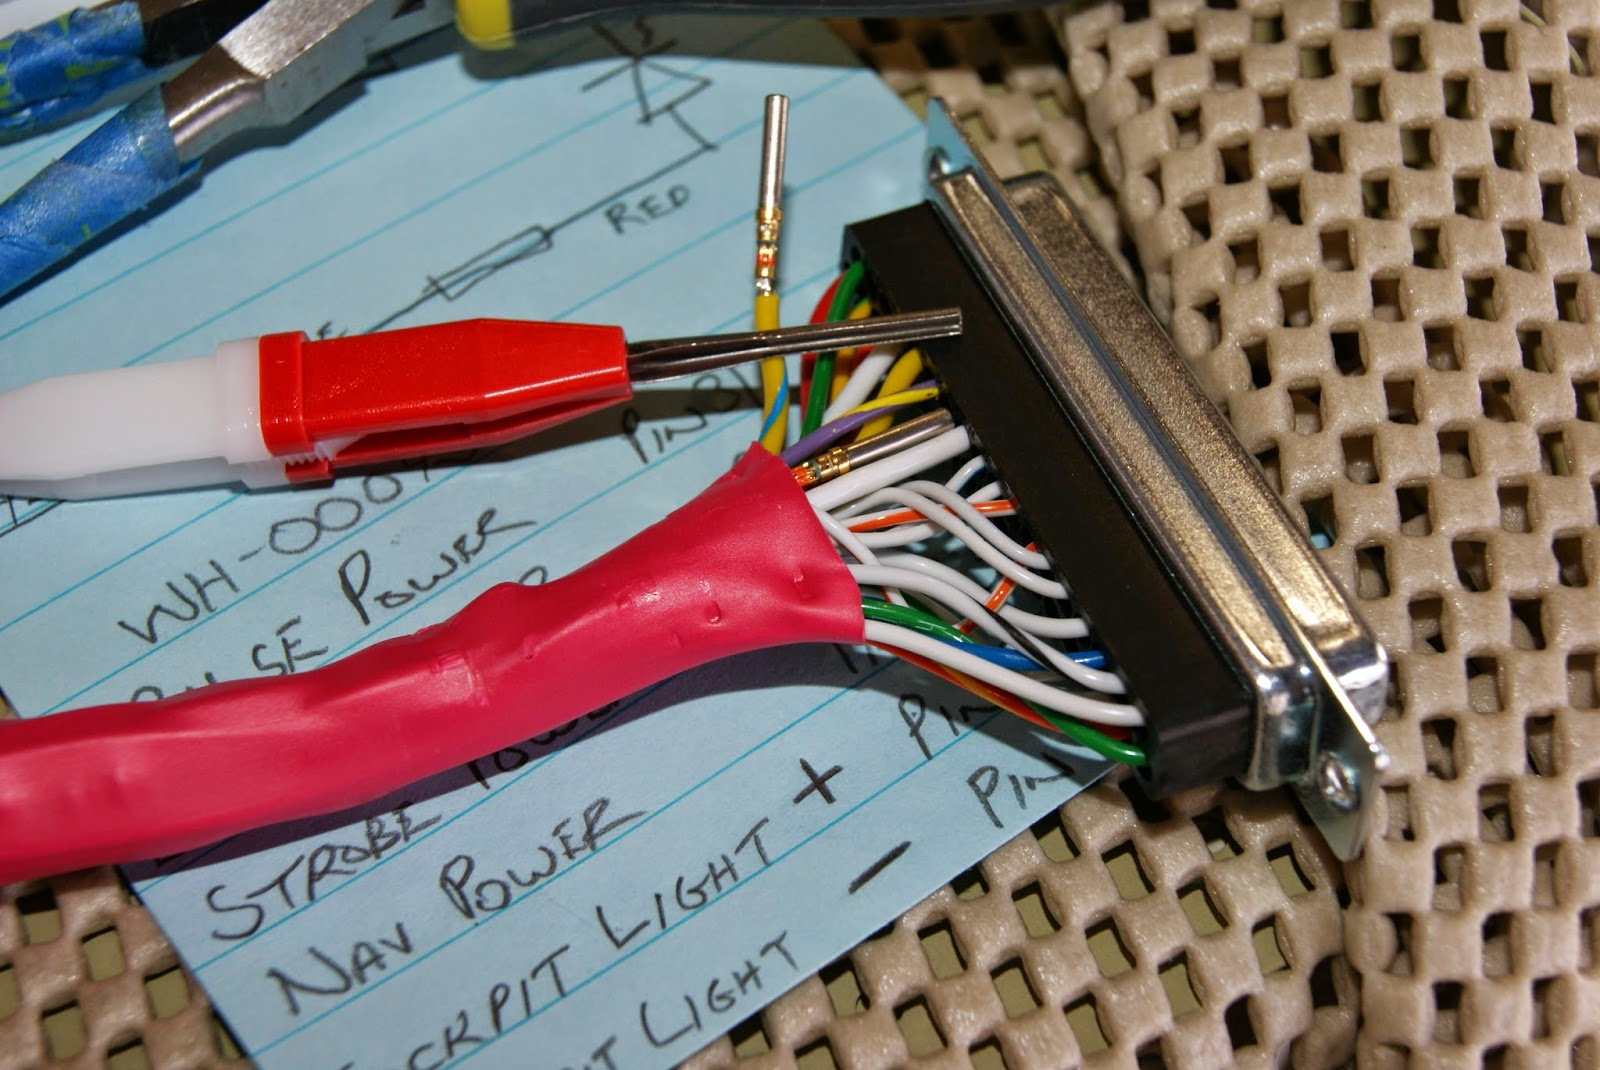 DOG Aviation John\'s RV-12 Blog: WH-00045 Wire Harness Installed